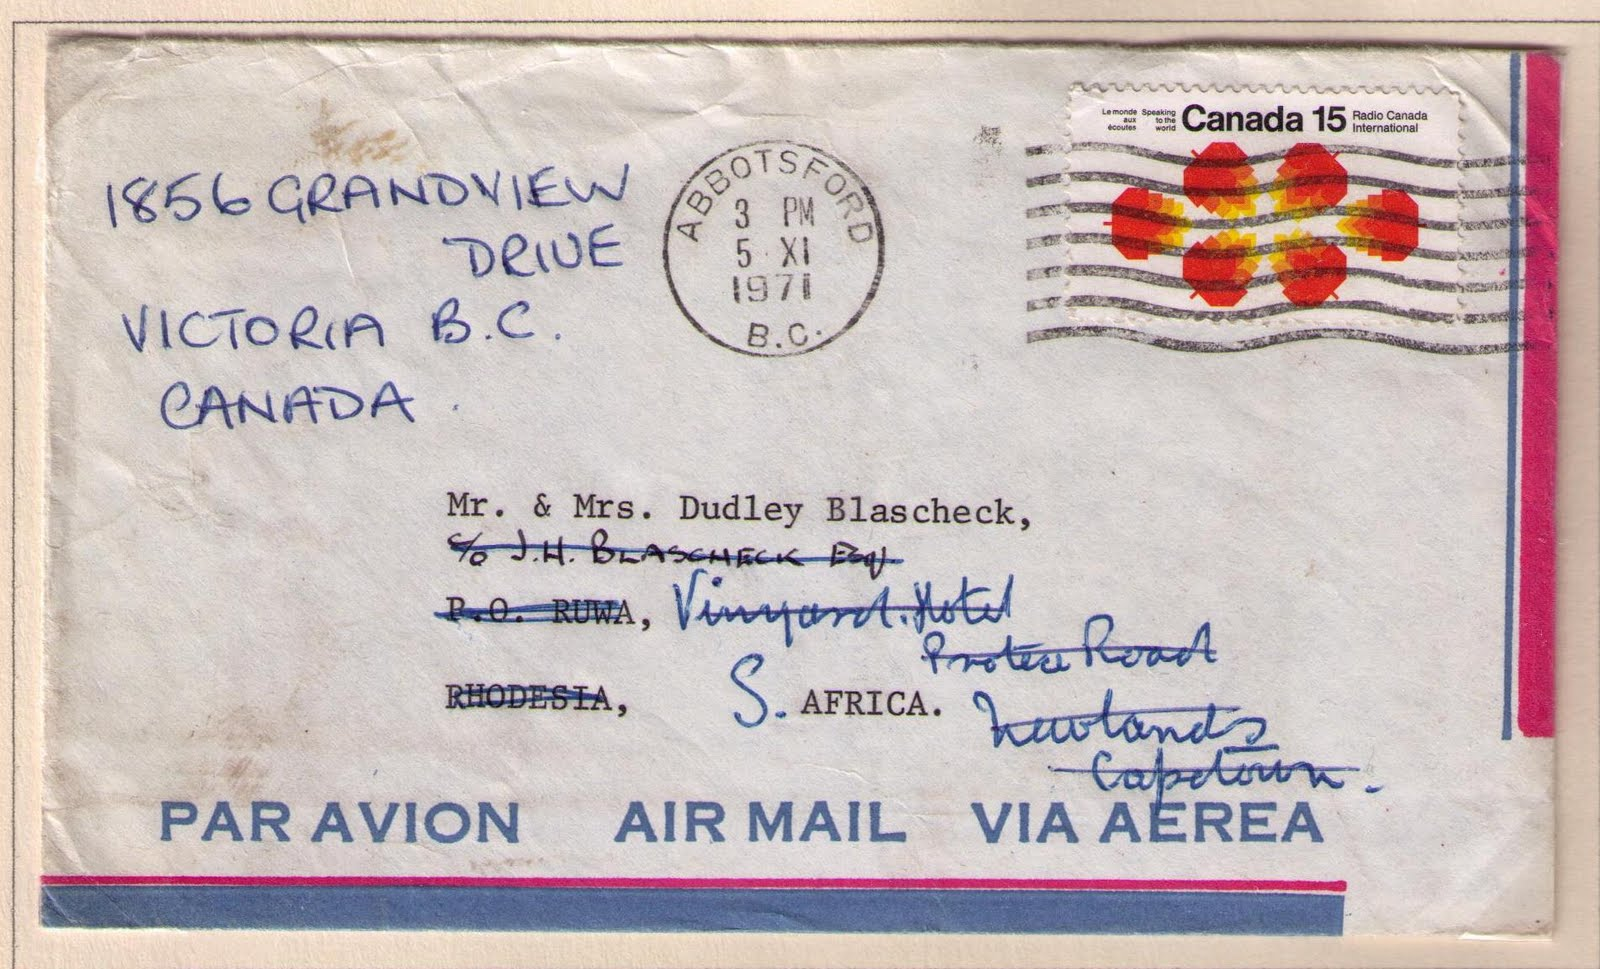 abbotsford to ruwa rhodesia november 5 1971 15 cents international air mail letter rate re directed to south africa then to canada